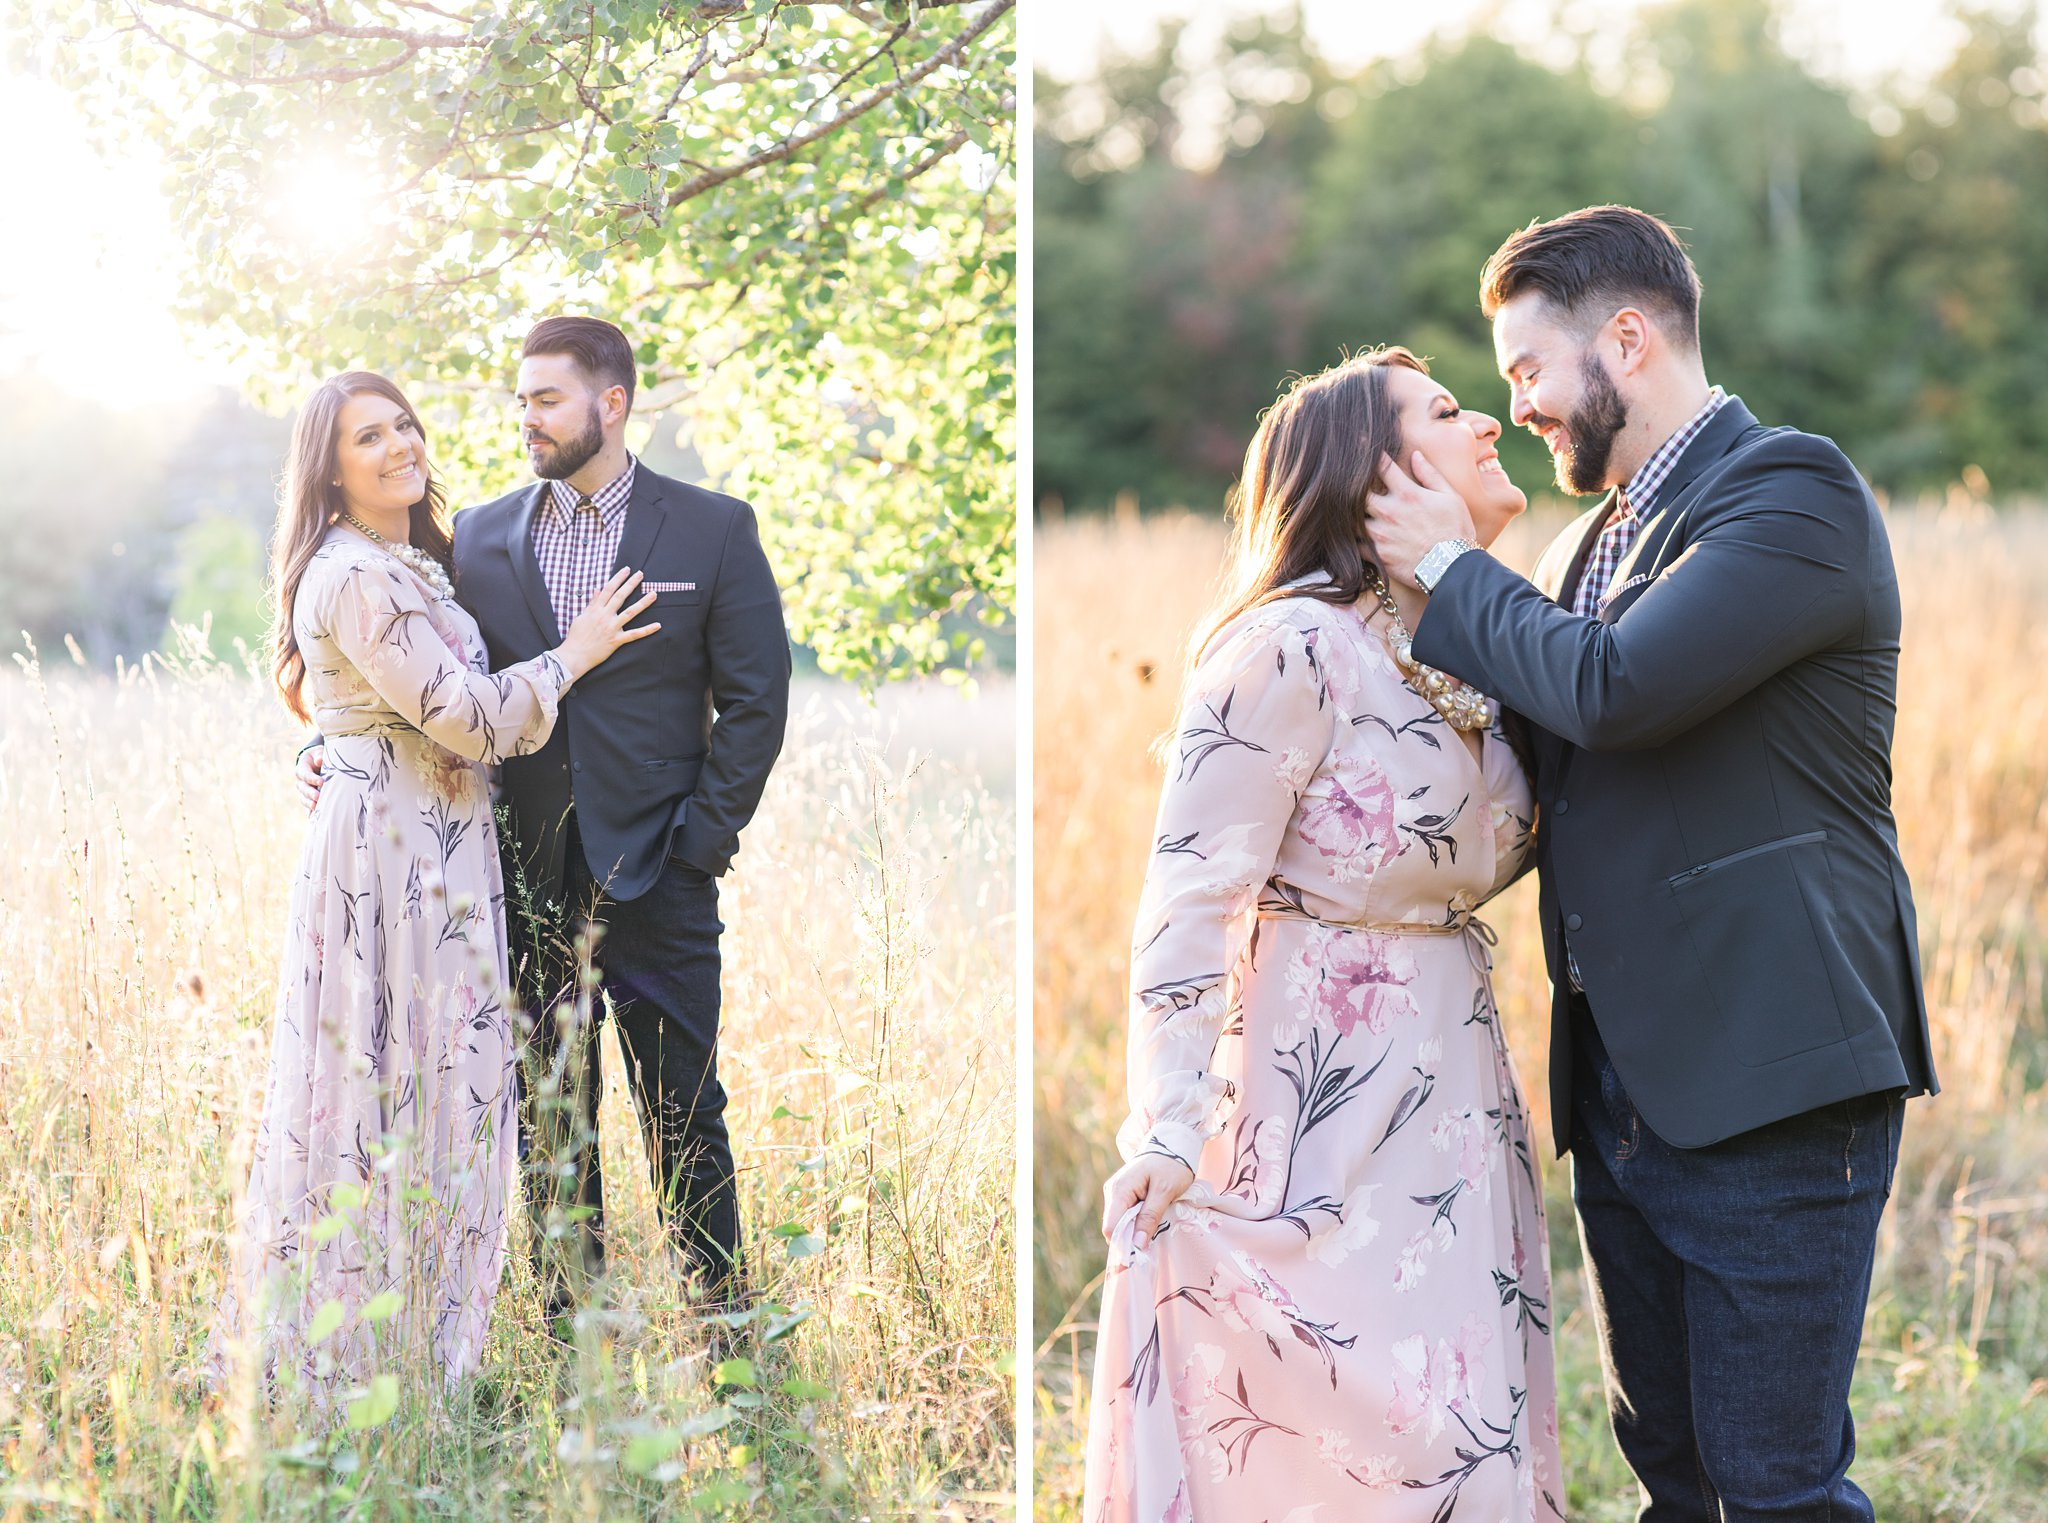 Sunset kiss, Mackenzie King Estate Engagement Photos by Amy Pinder Photography